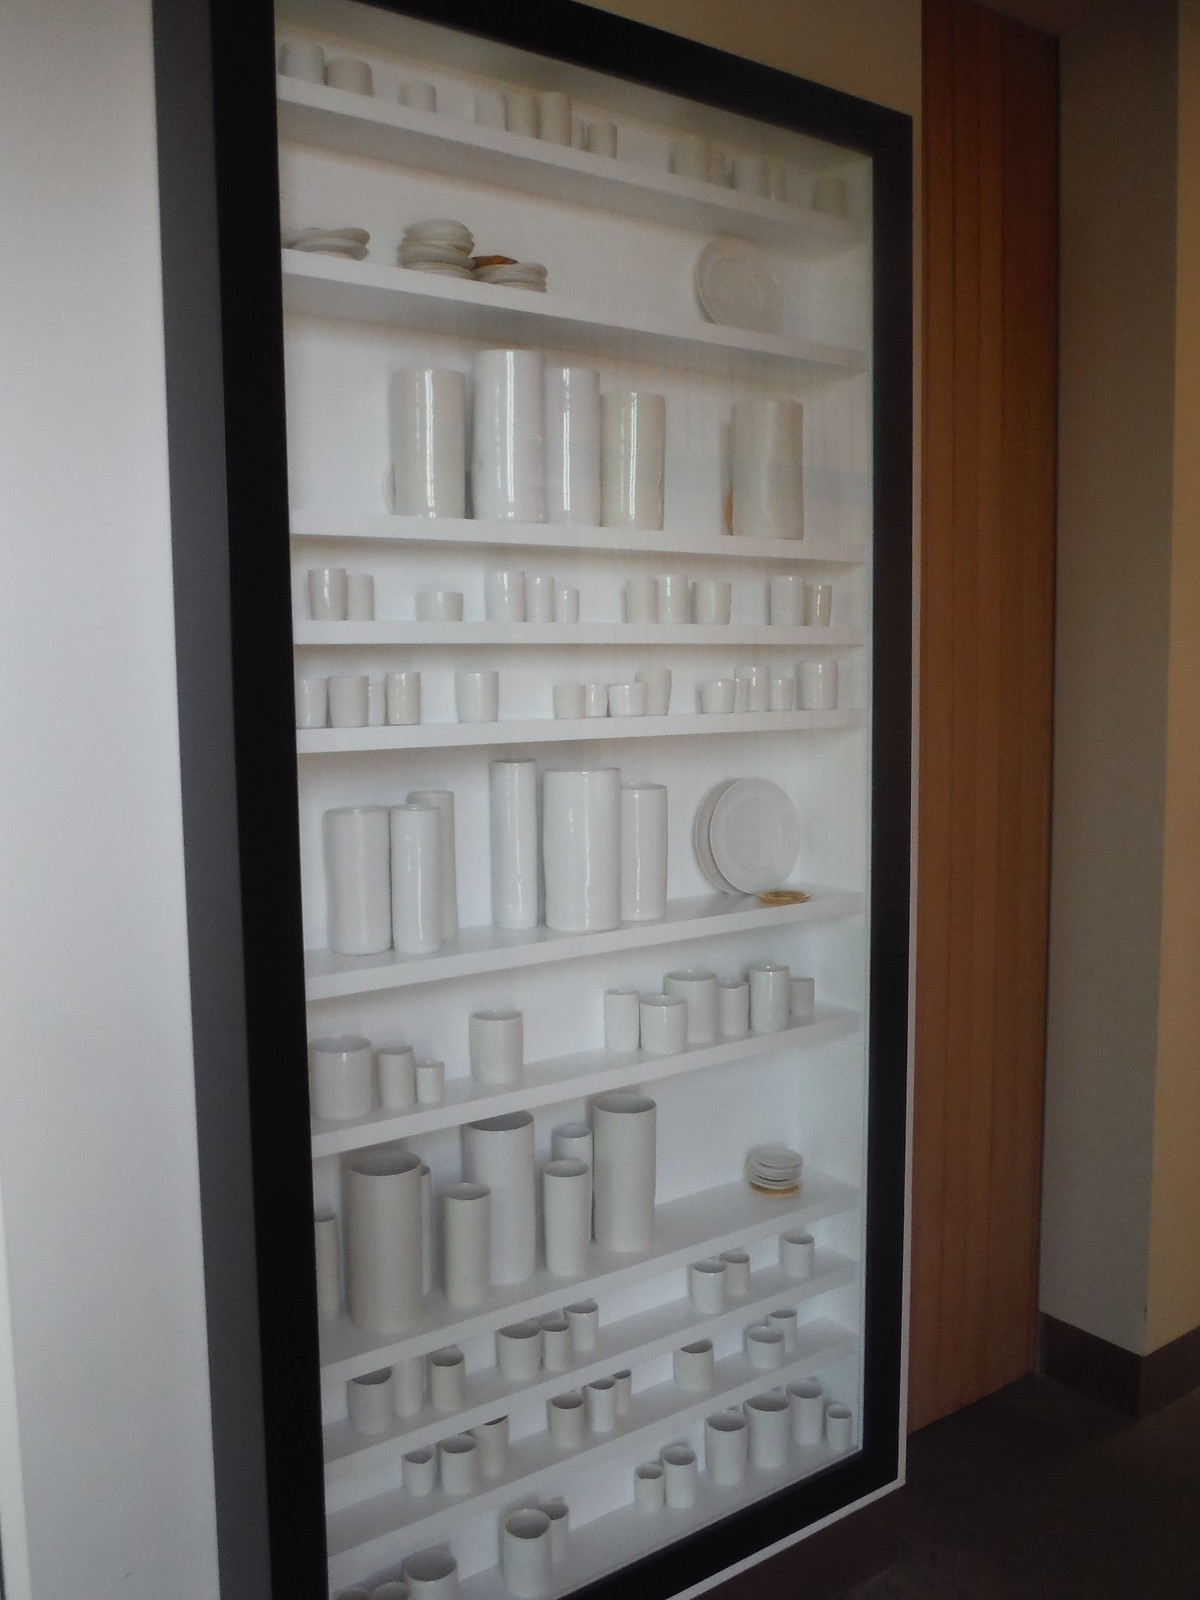 Unpacking my Library, Edmund de Waal, 2012, Windmill Hill Archive, Waddesdon Estate SWC 192 Haddenham to Aylesbury (via Waddesdon)